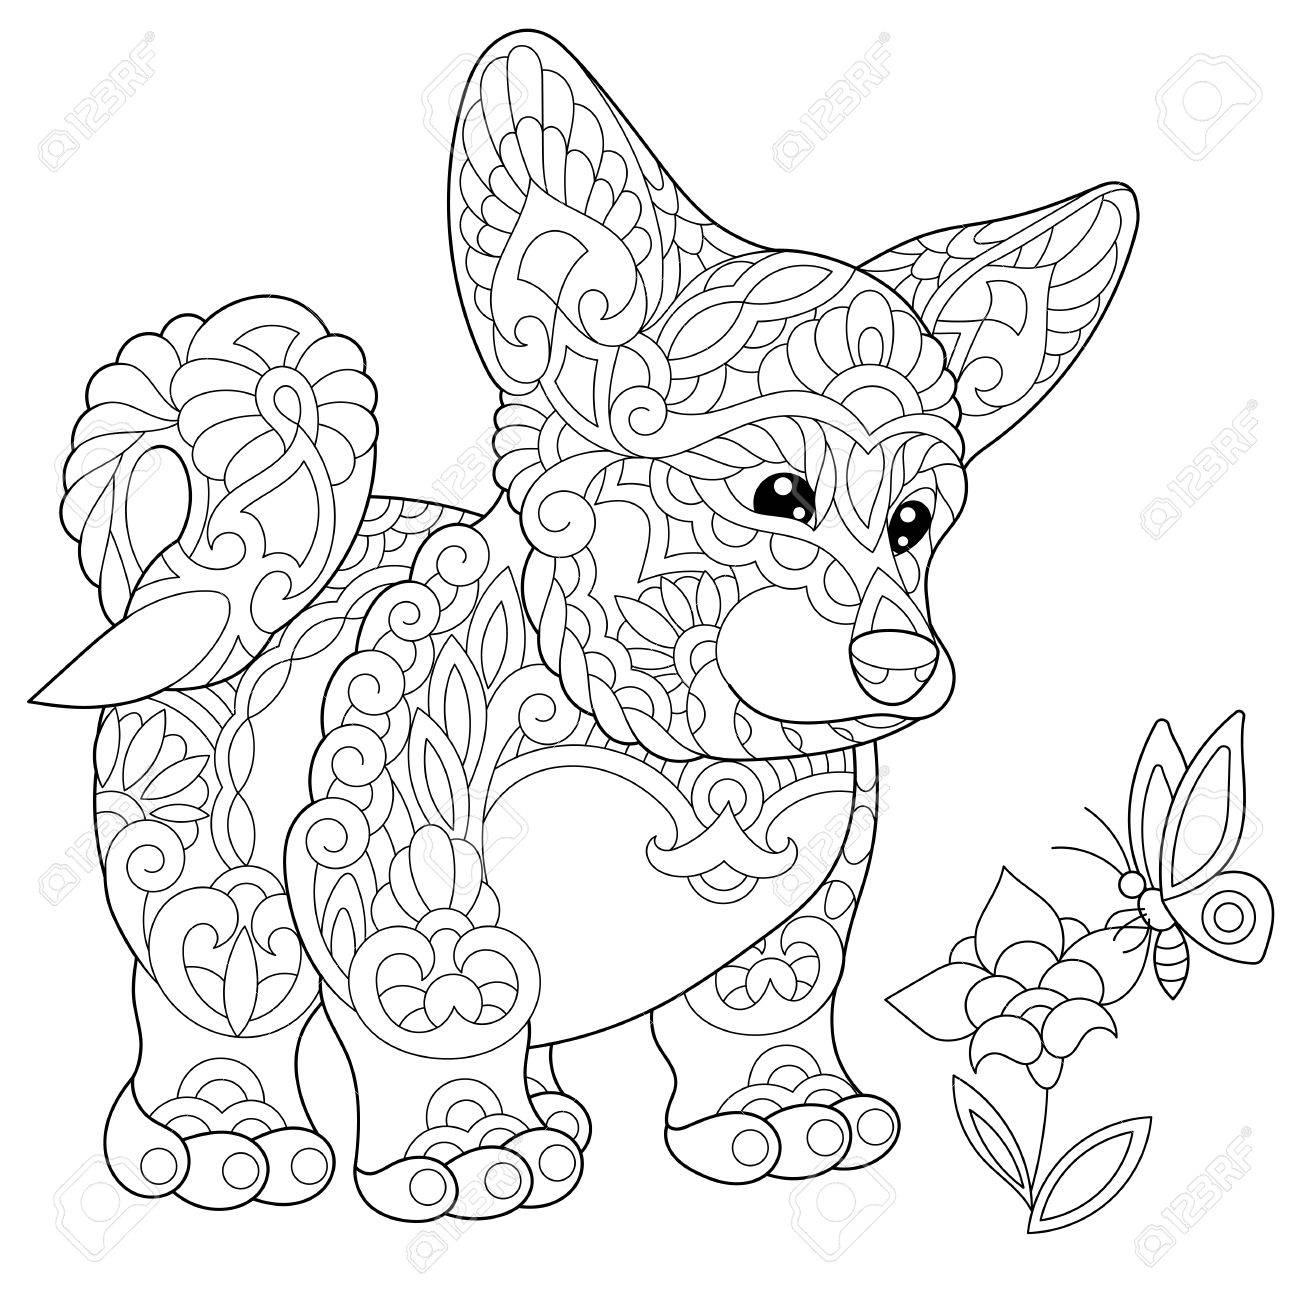 1300x1300 Coloring Page Of Welsh Corgi Dog And Butterfly On A Flower